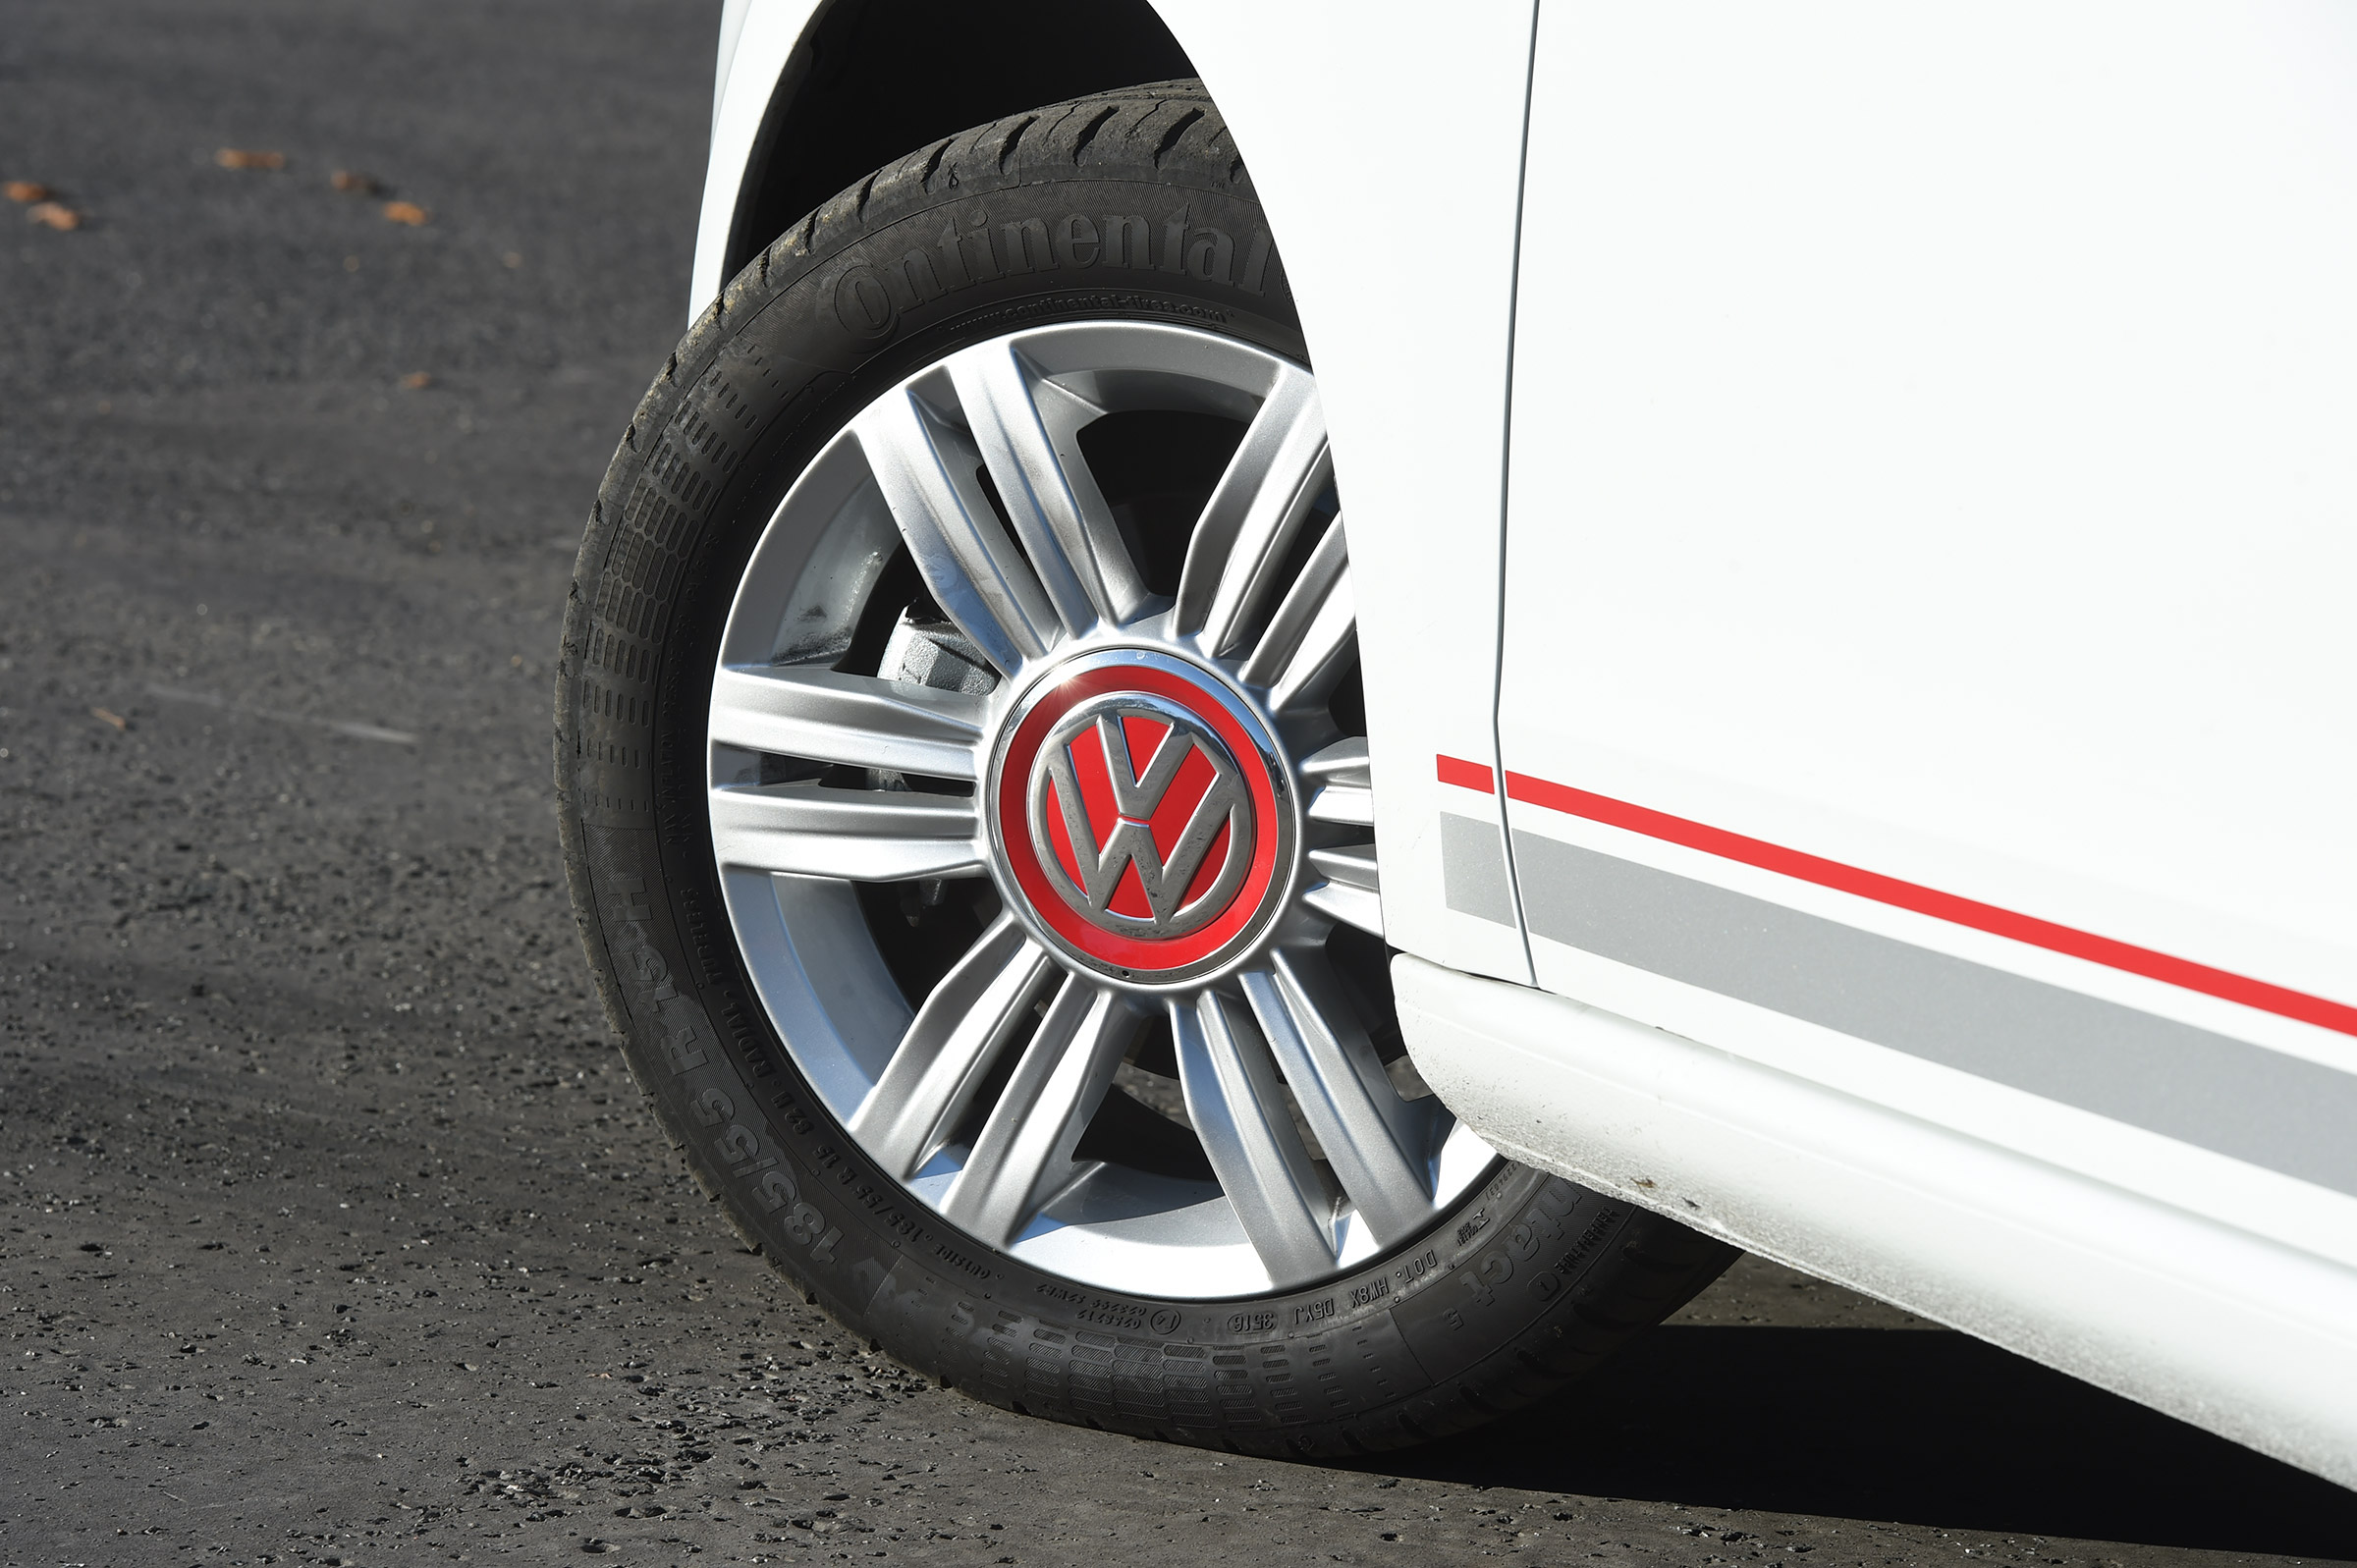 2017 Volkswagen Up Exterior White View Wheel Profile (Photo 6 of 15)